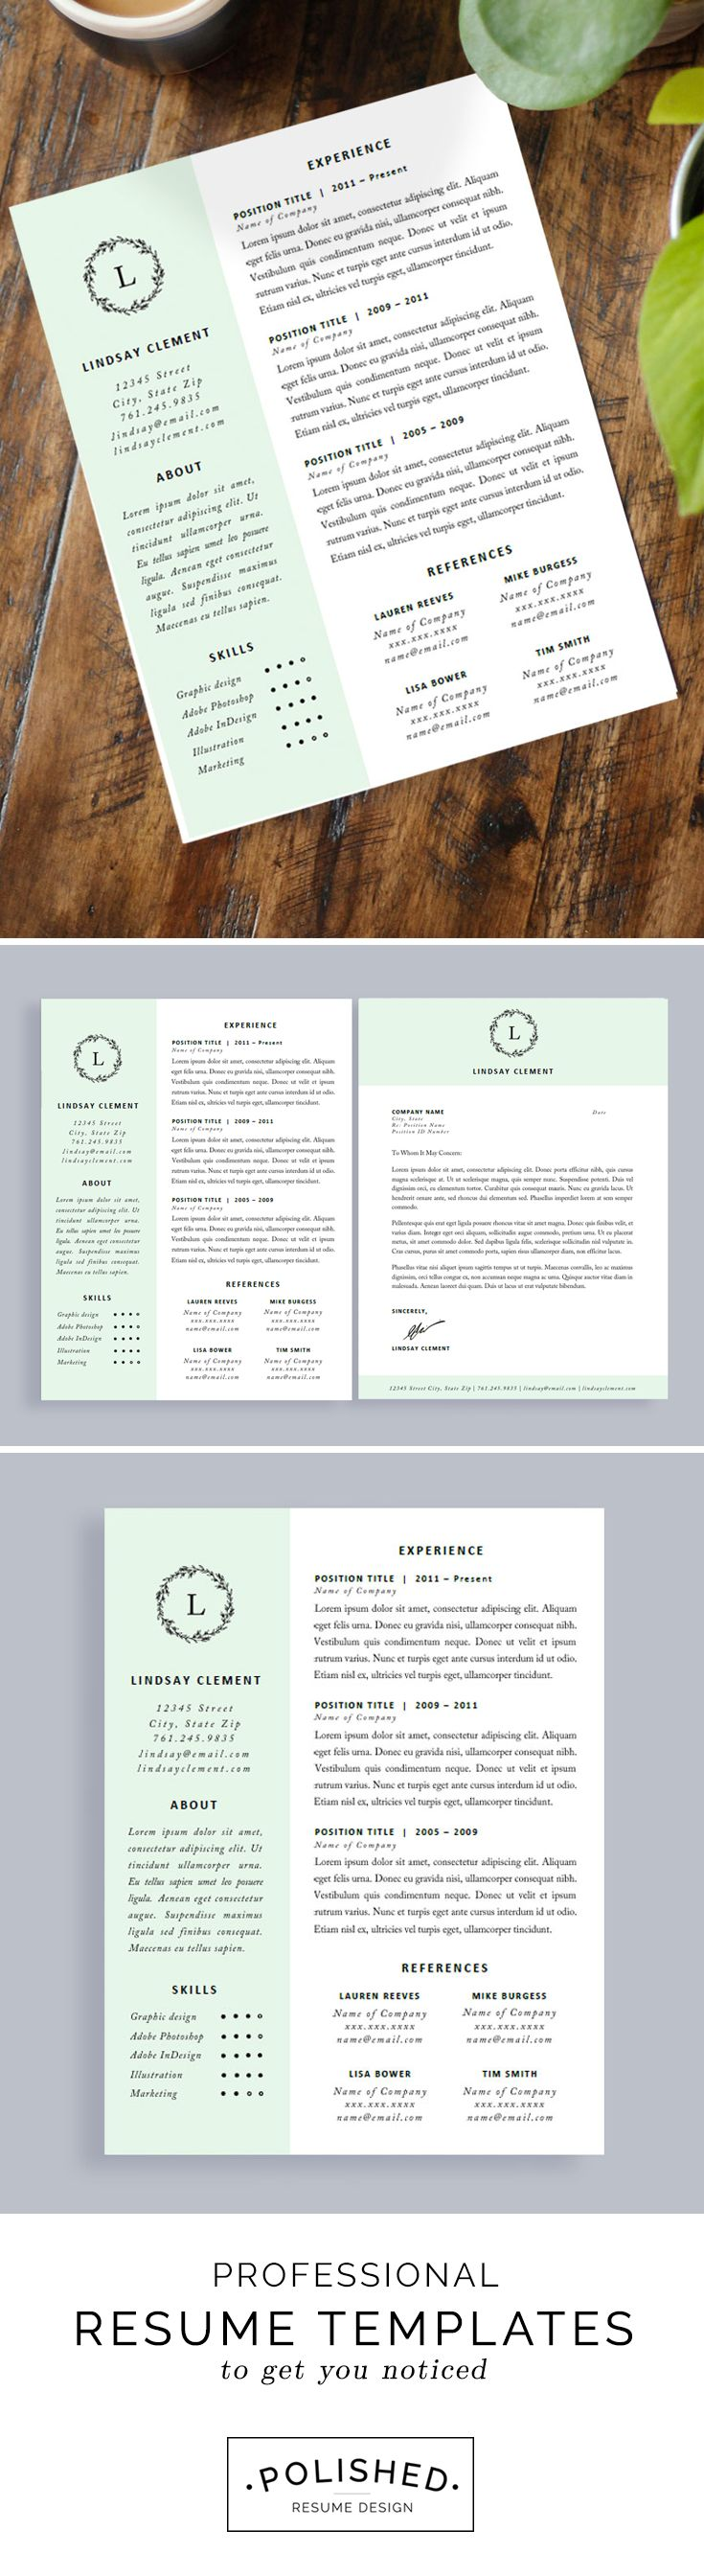 professional resume templates for microsoft word features 1 and 2 page options plus a free cover letter - Free Cover Letter Template Microsoft Word